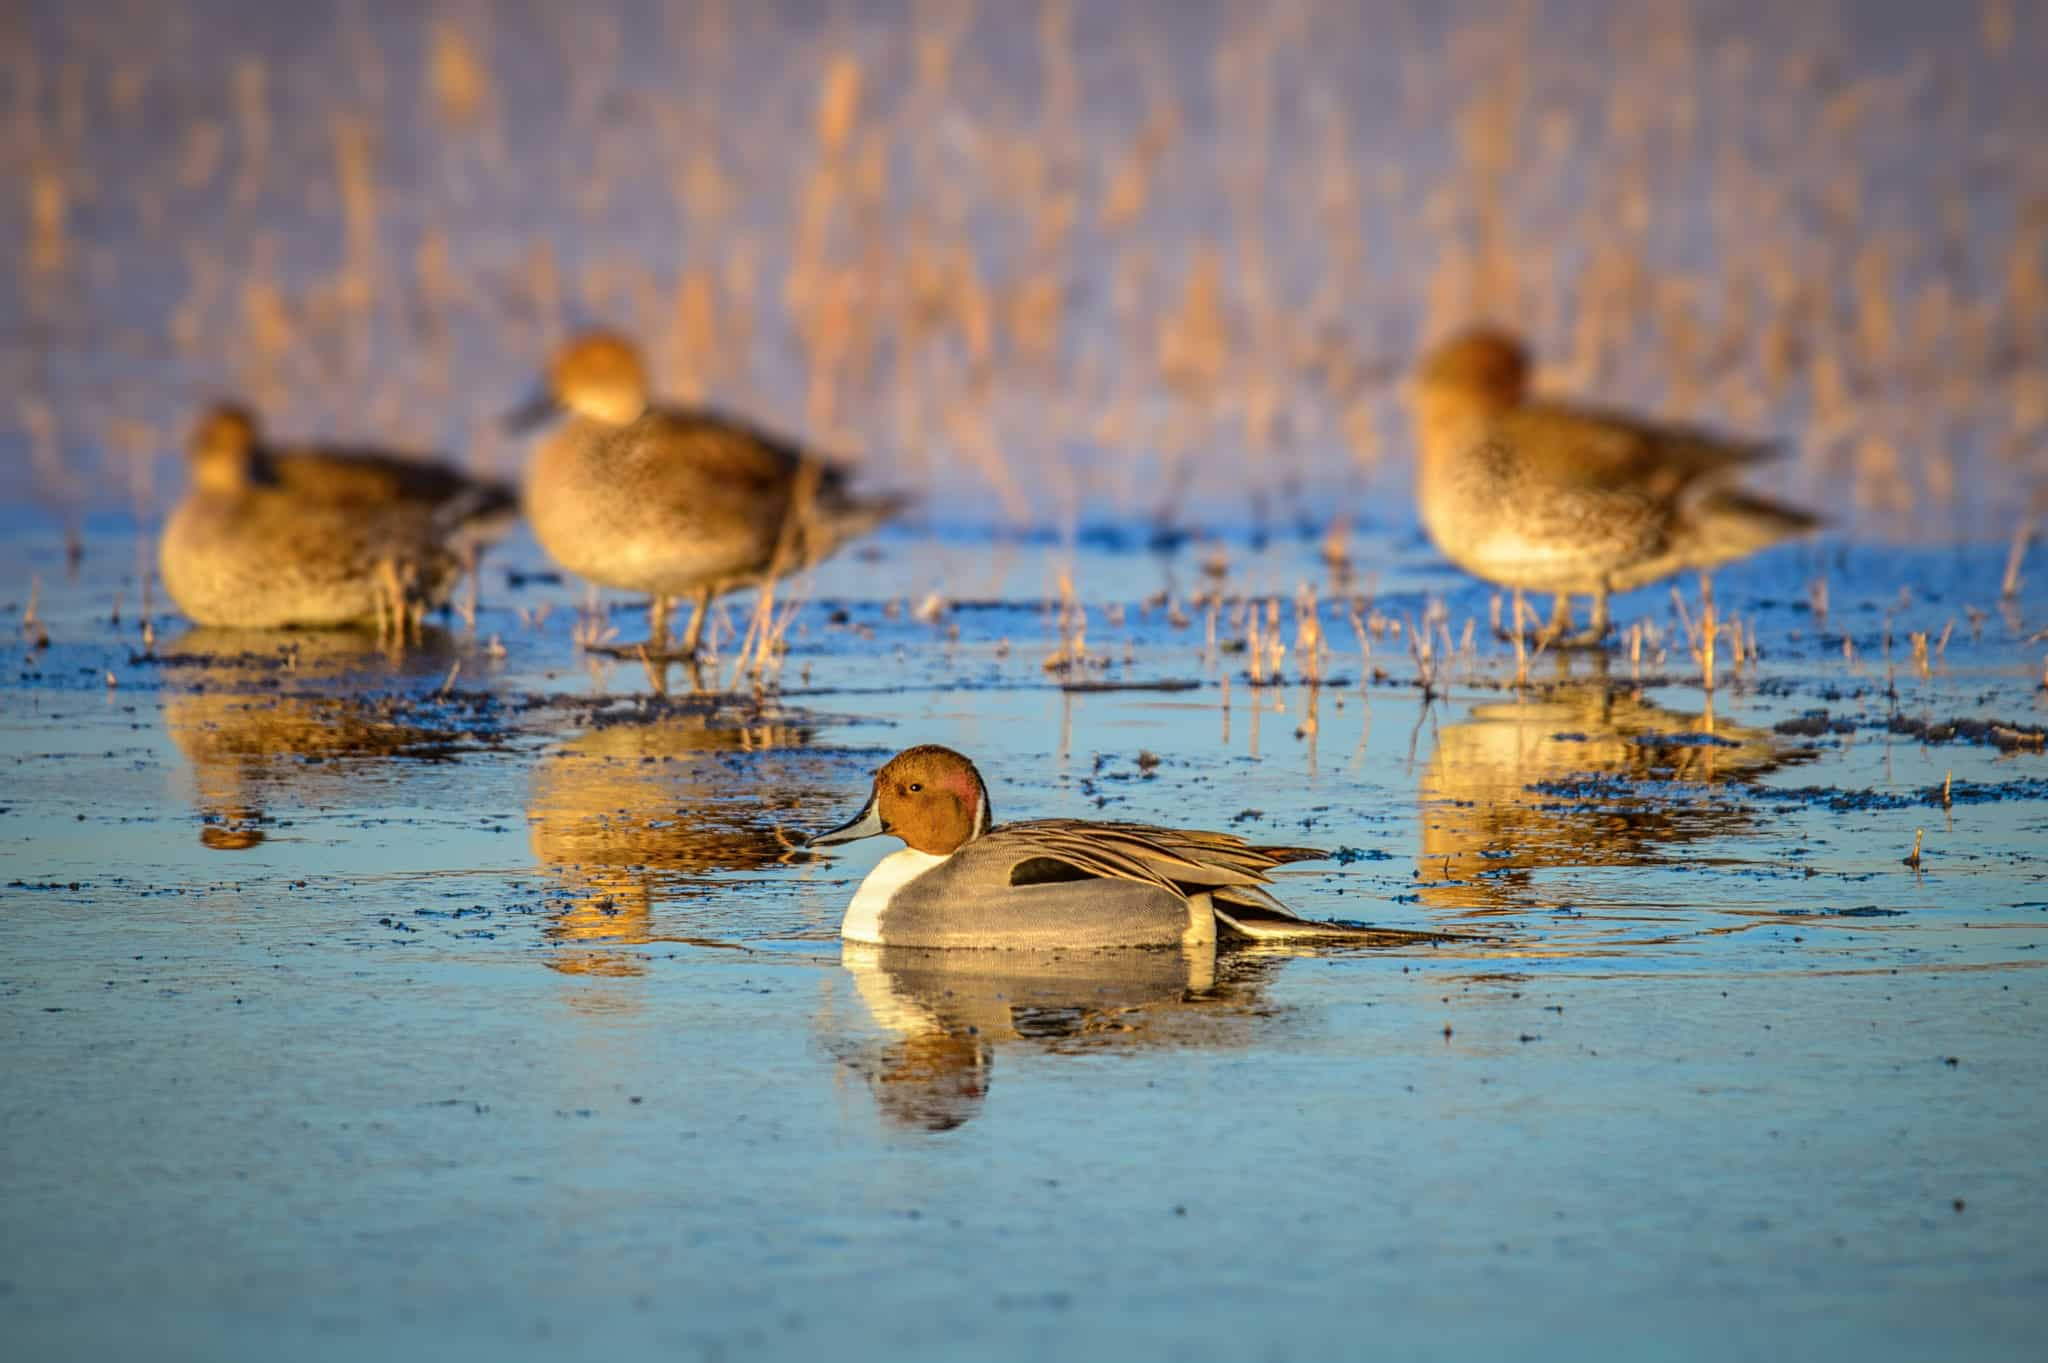 Northern Pintail ducks feed in a pond in Bosque del Apache National Wildlife Refuge near Socorro, New Mexico.